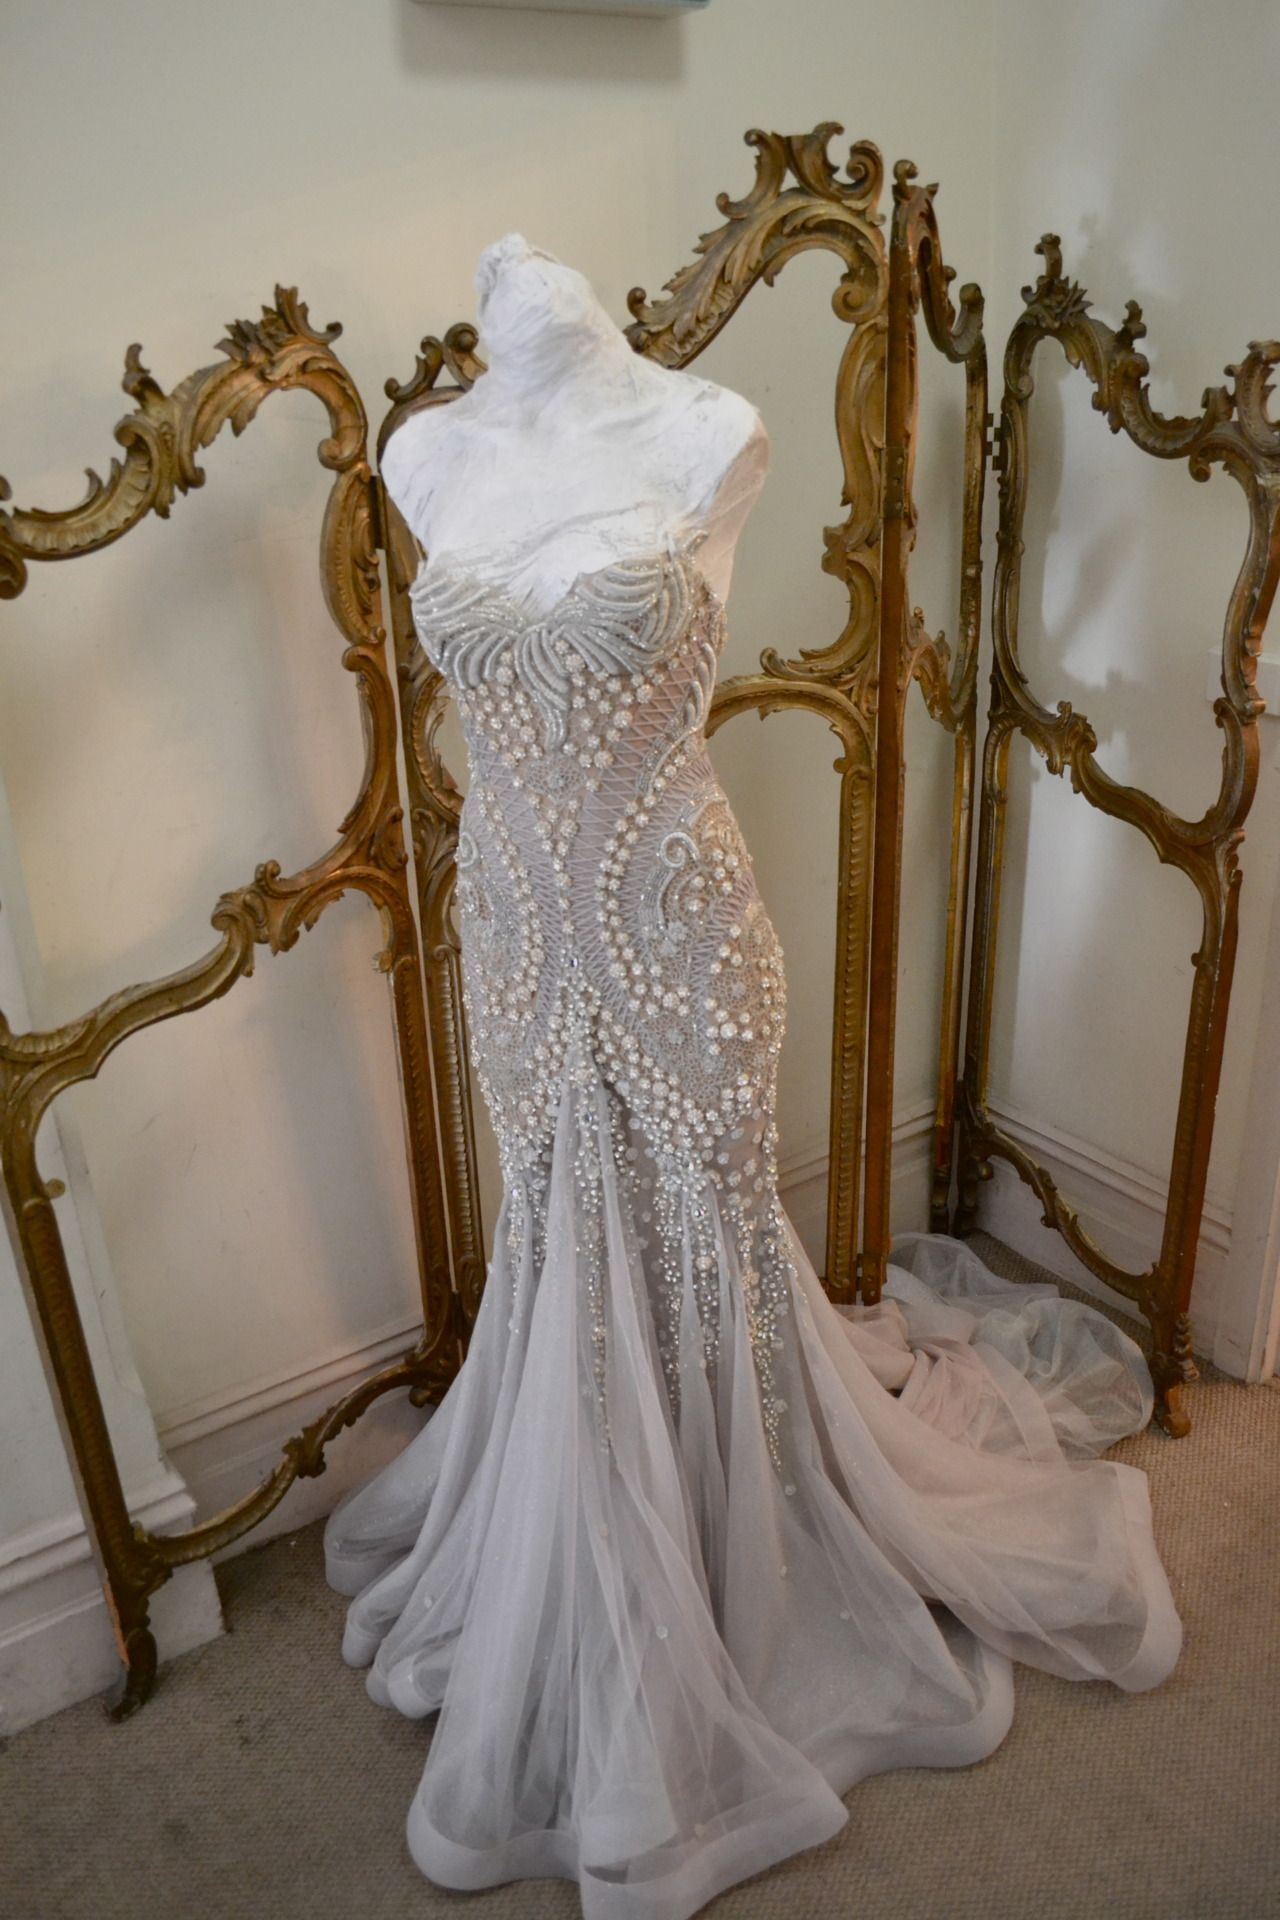 Jaton couture Engagement dress | That dress! | Pinterest ...